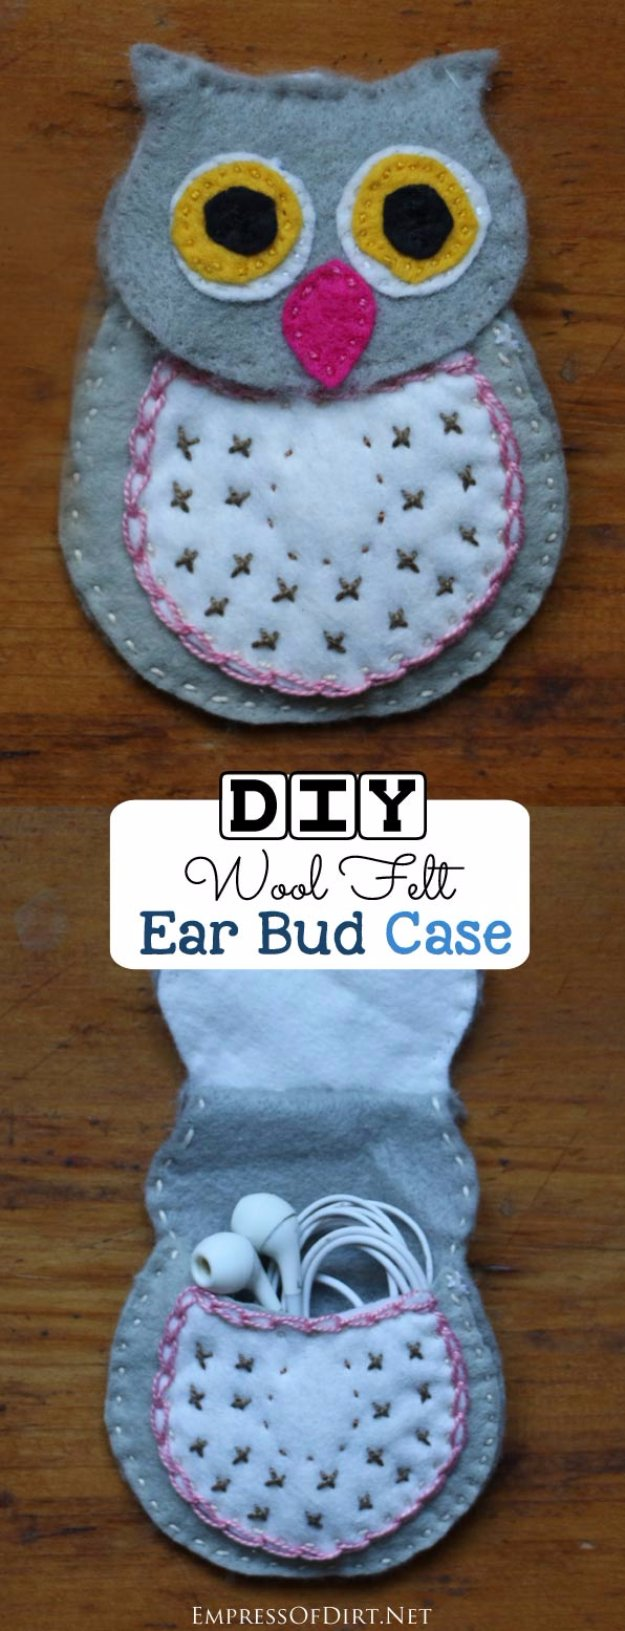 DIY Sewing Gift Ideas for Adults and Kids, Teens, Women, Men and Baby - DIY Wool Felt Ear Bud case - Cute and Easy DIY Sewing Projects Make Awesome Presents for Mom, Dad, Husband, Boyfriend, Children #sewing #diygifts #sewingprojects